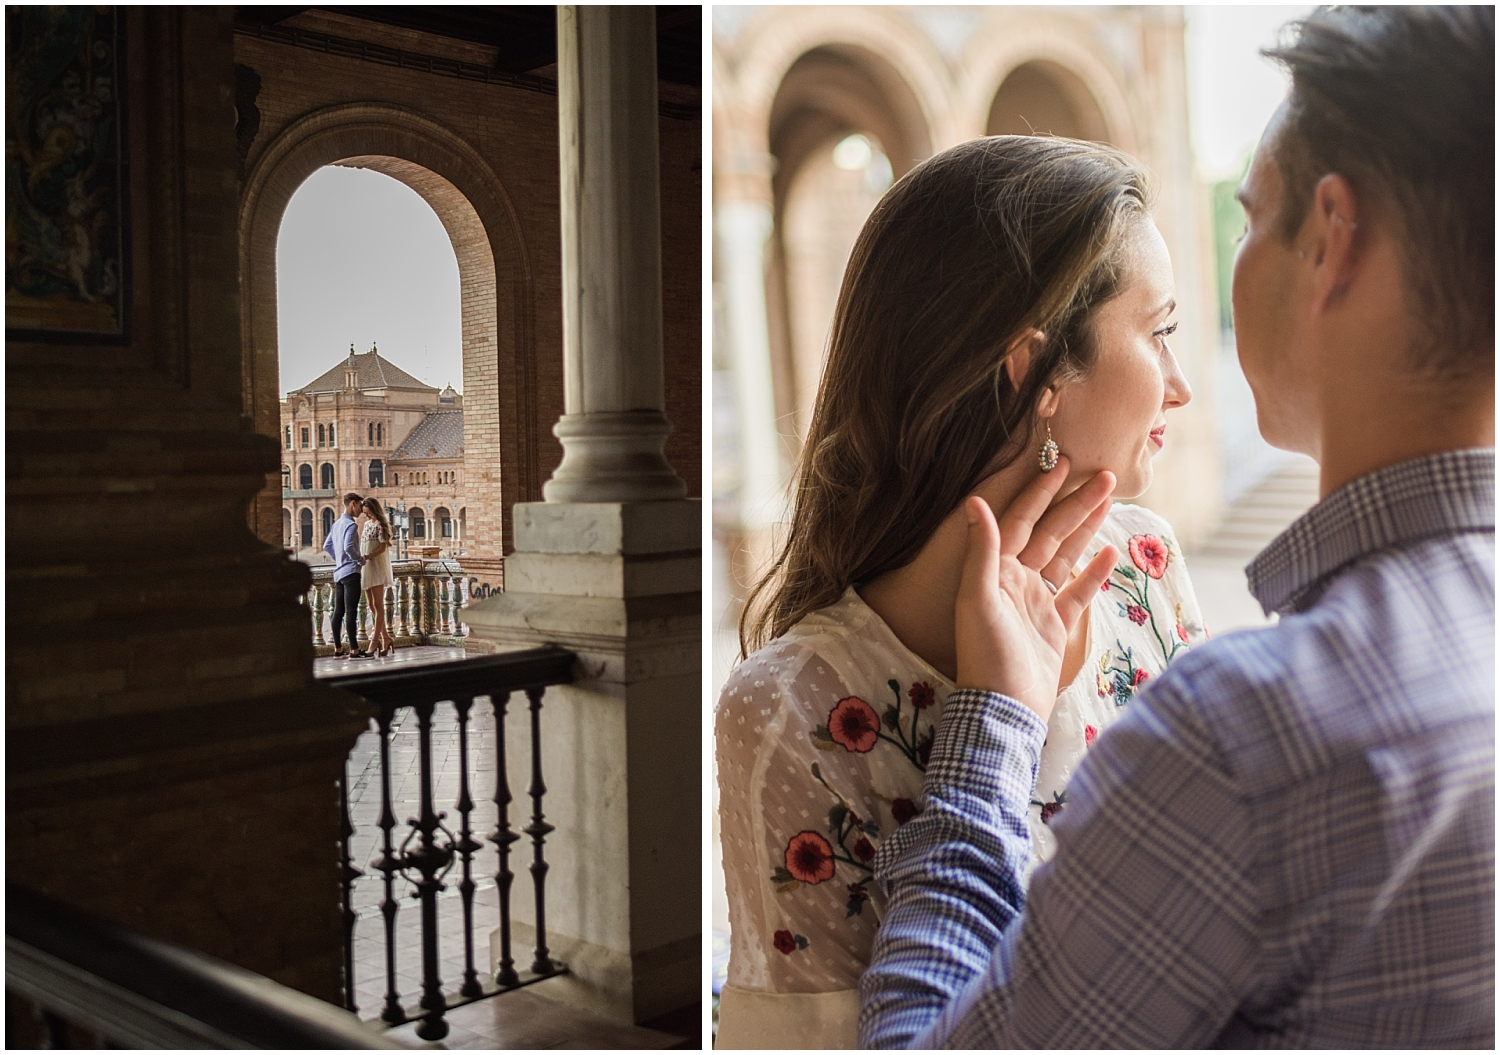 Gaetan_Jargot_Sevilla_engagement_session-6_W.jpg